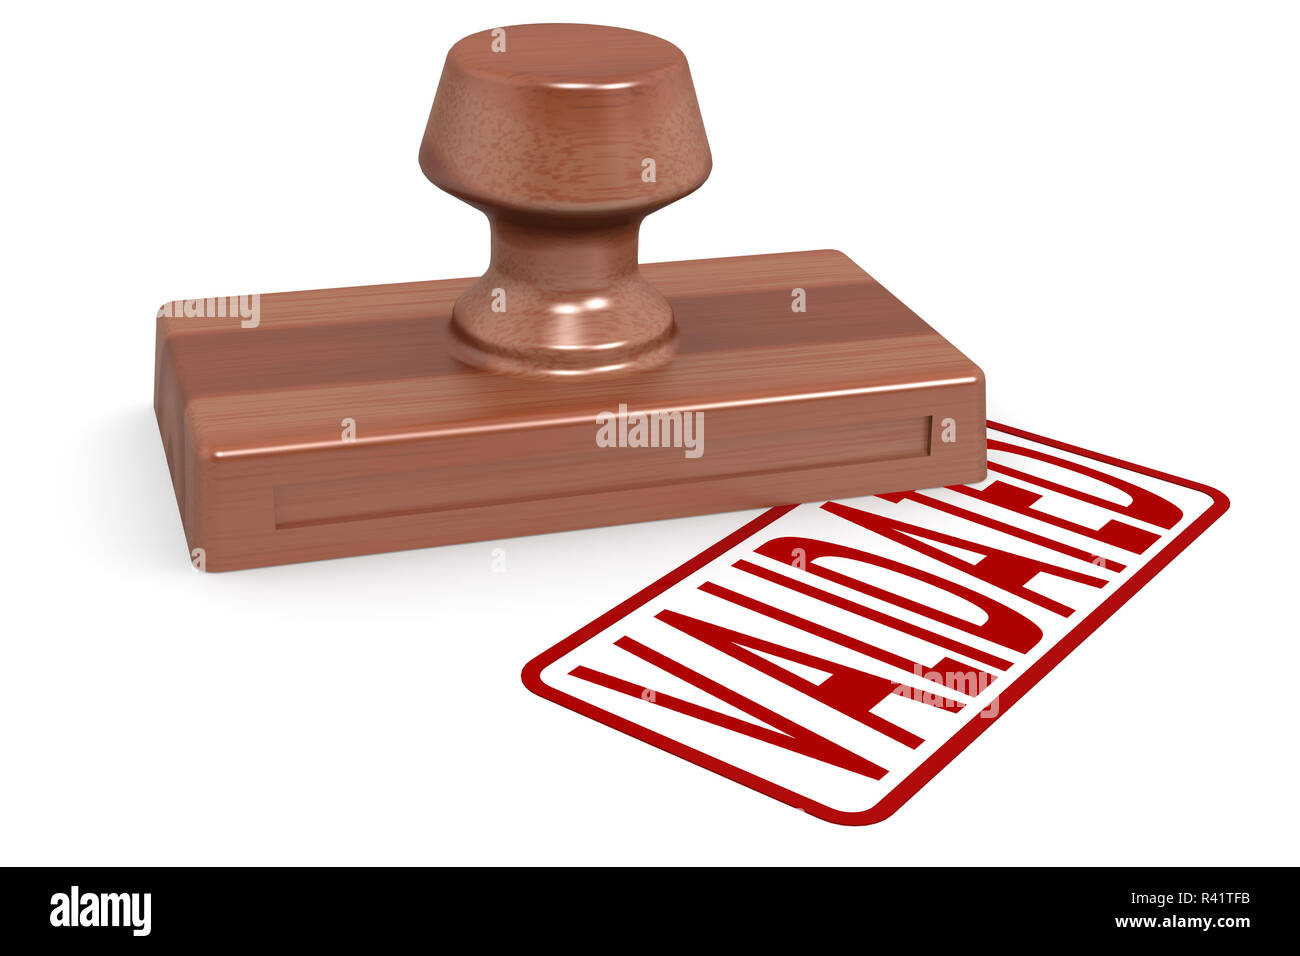 Wooden stamp validated with red text Stock Photo